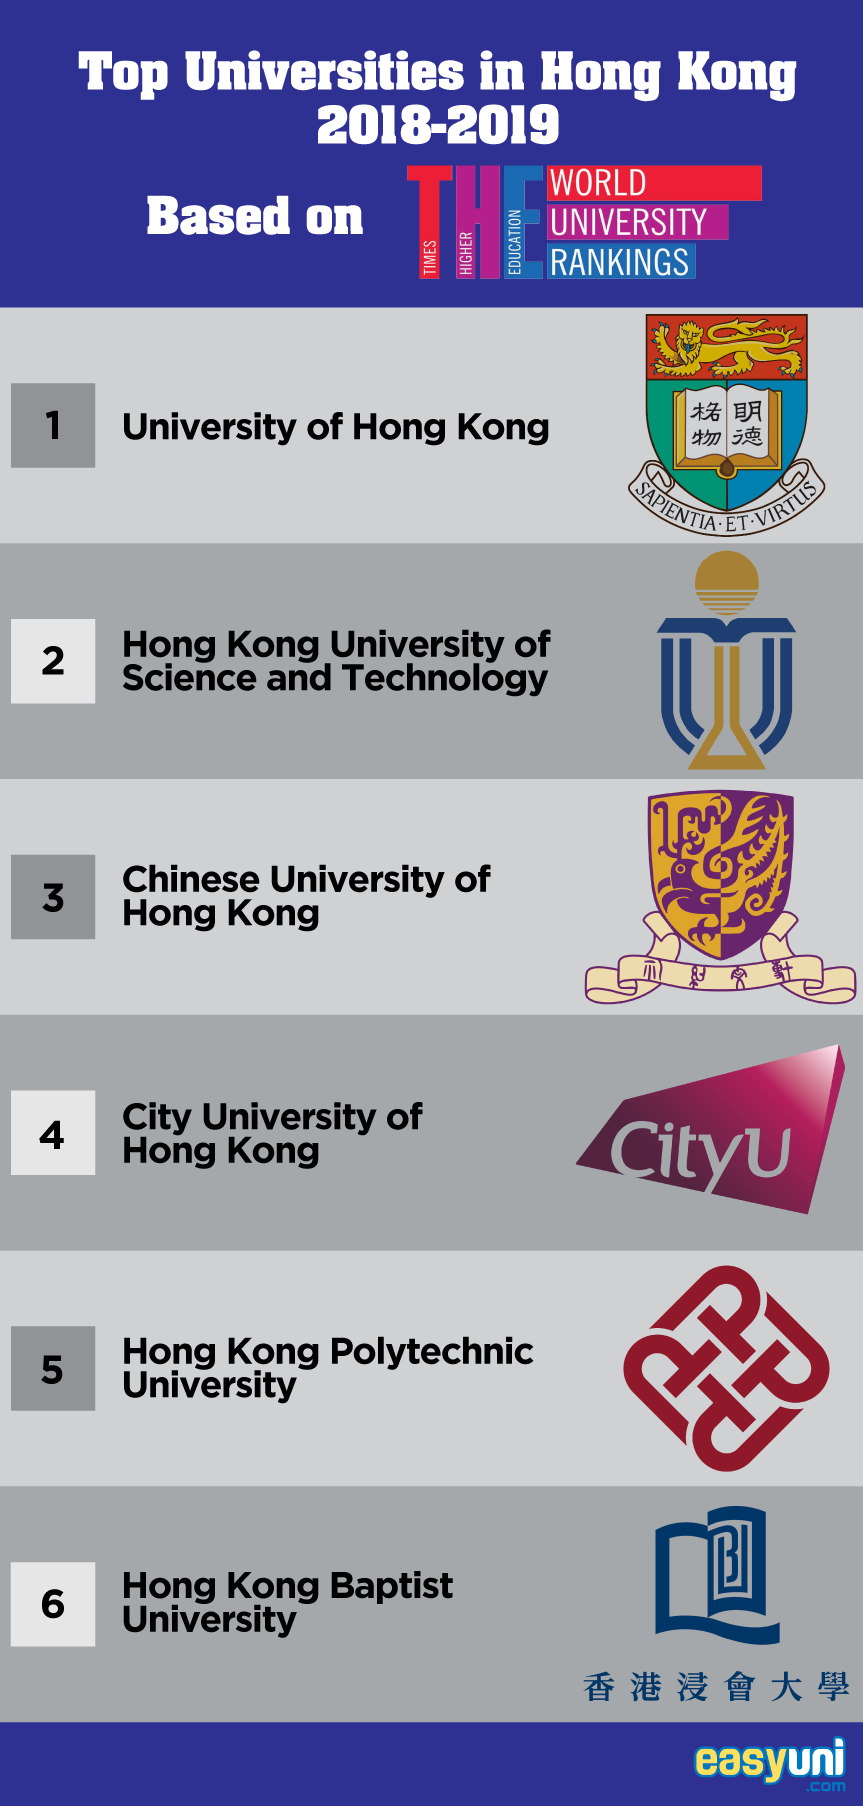 Top Universities in Hong Kong 2019